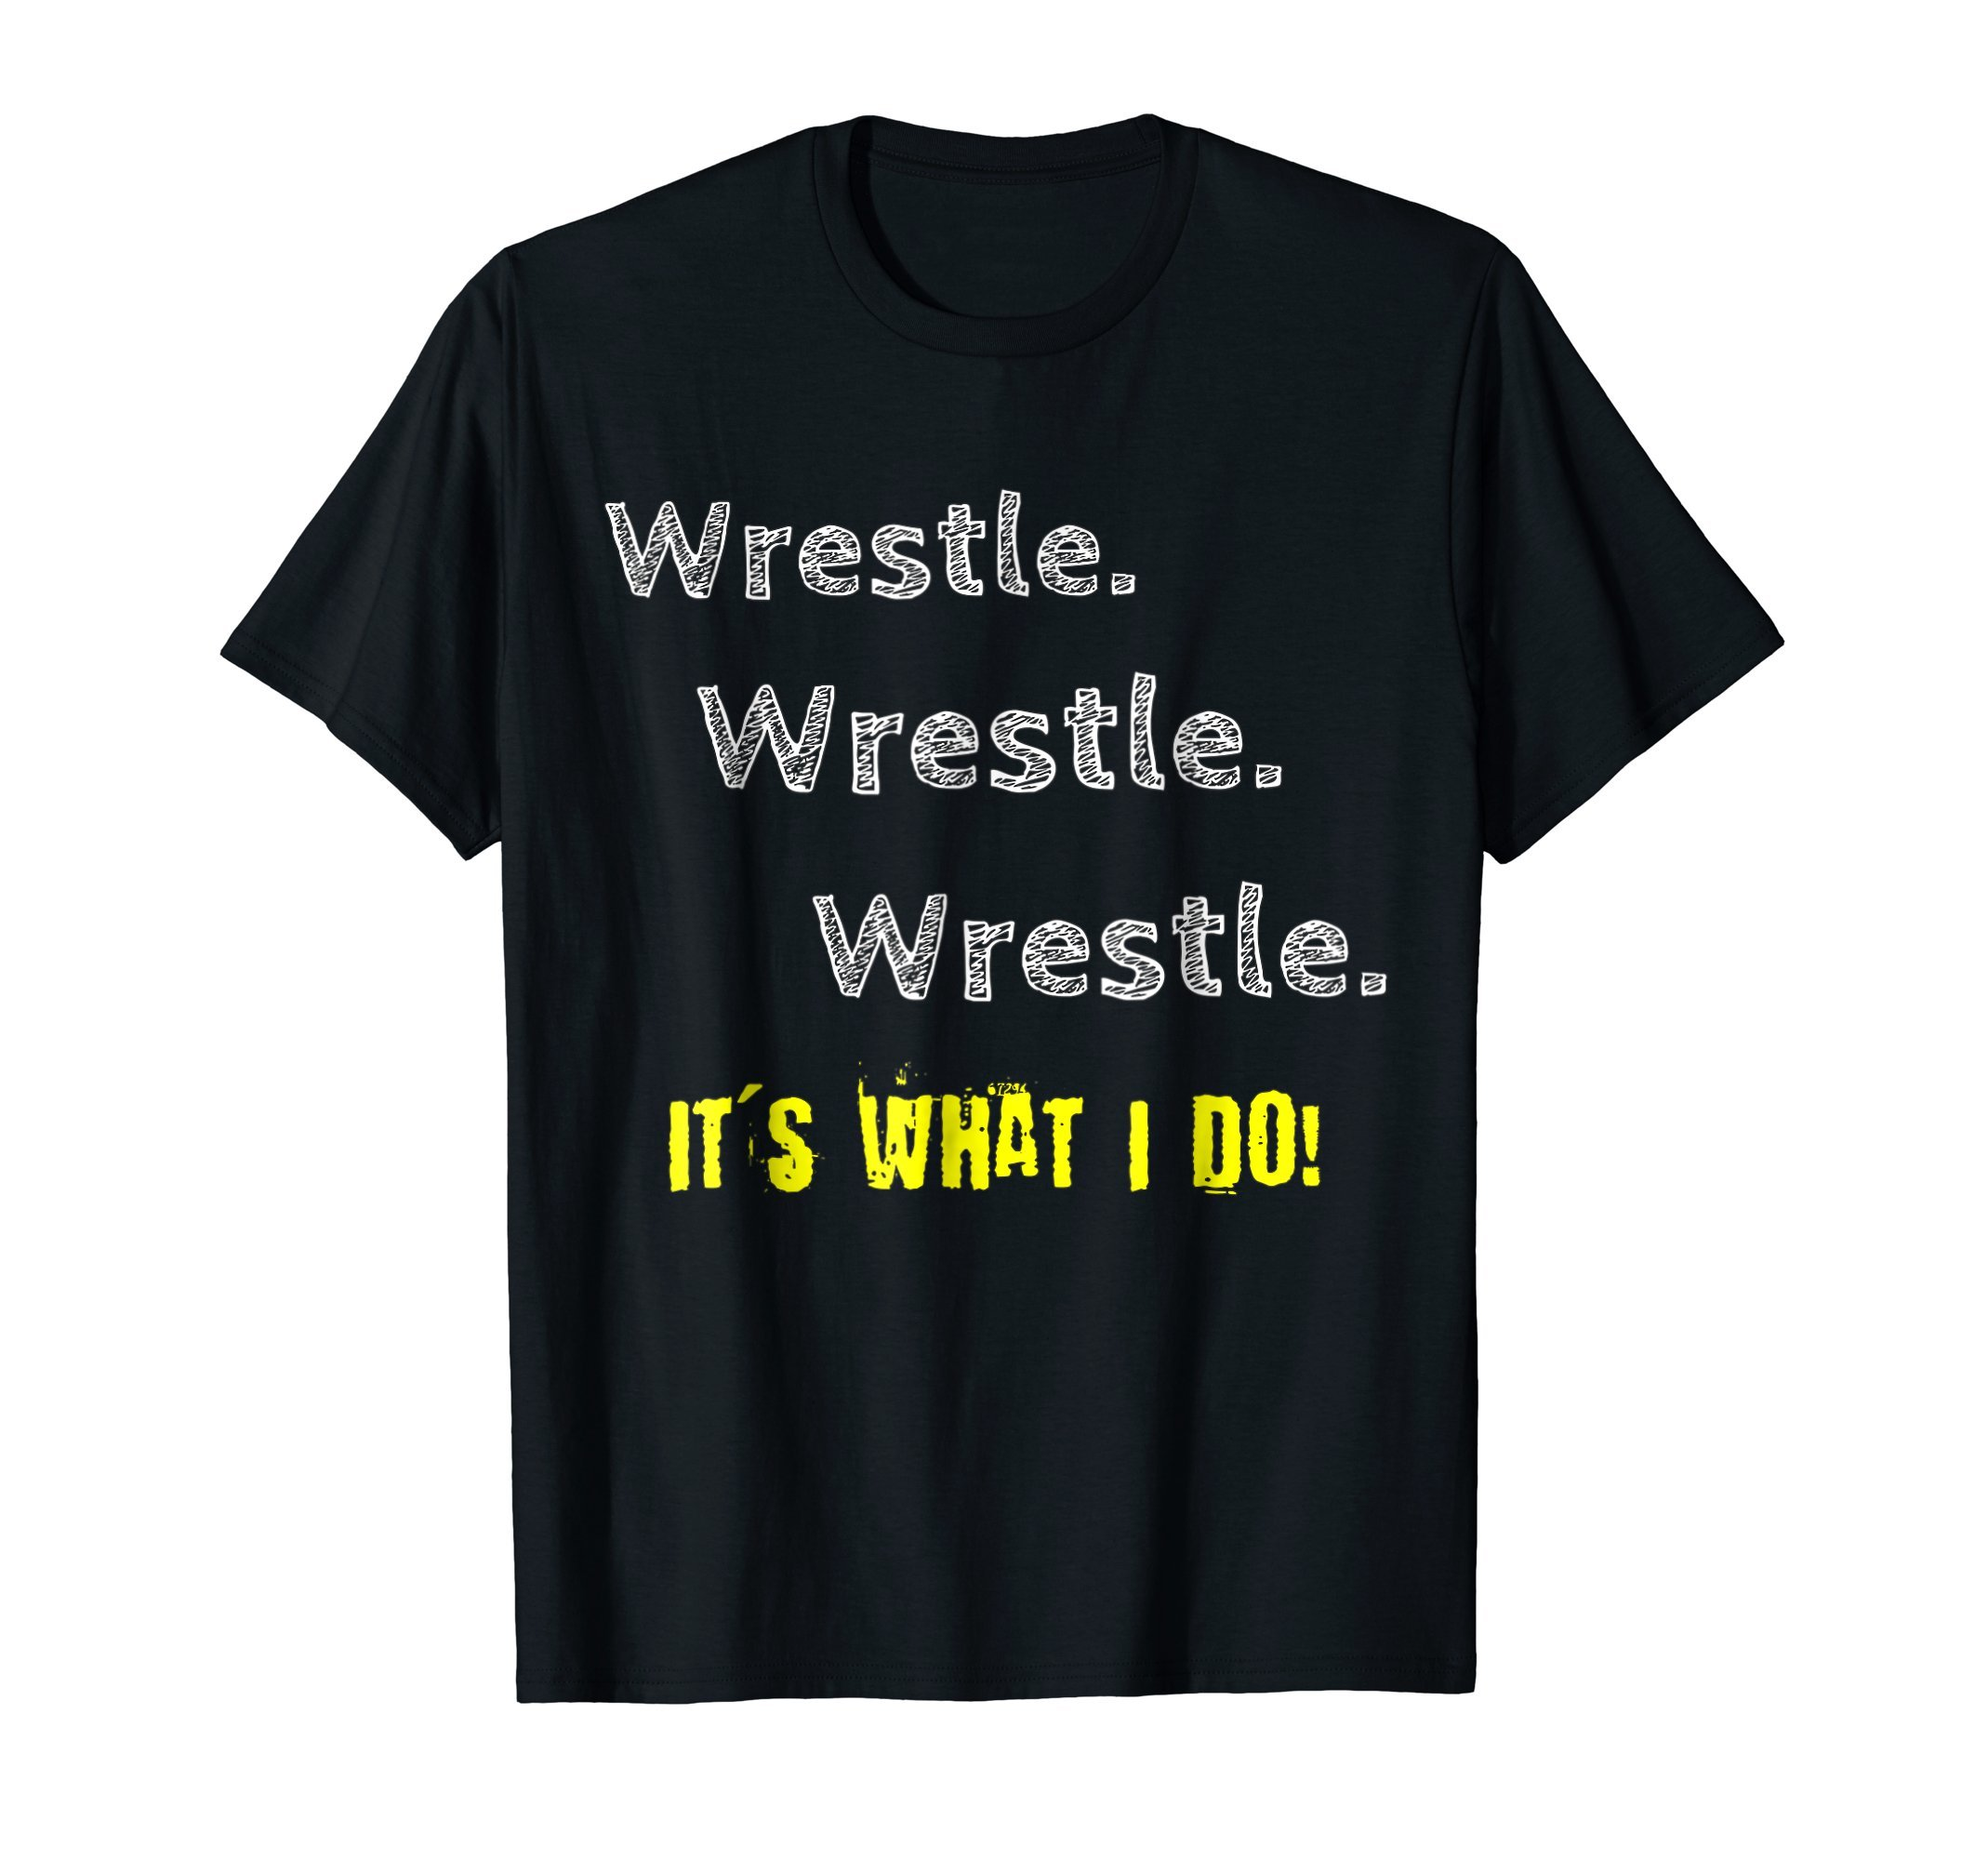 Wrestling Youth Wrestle It's What I Do Tshirt Tee